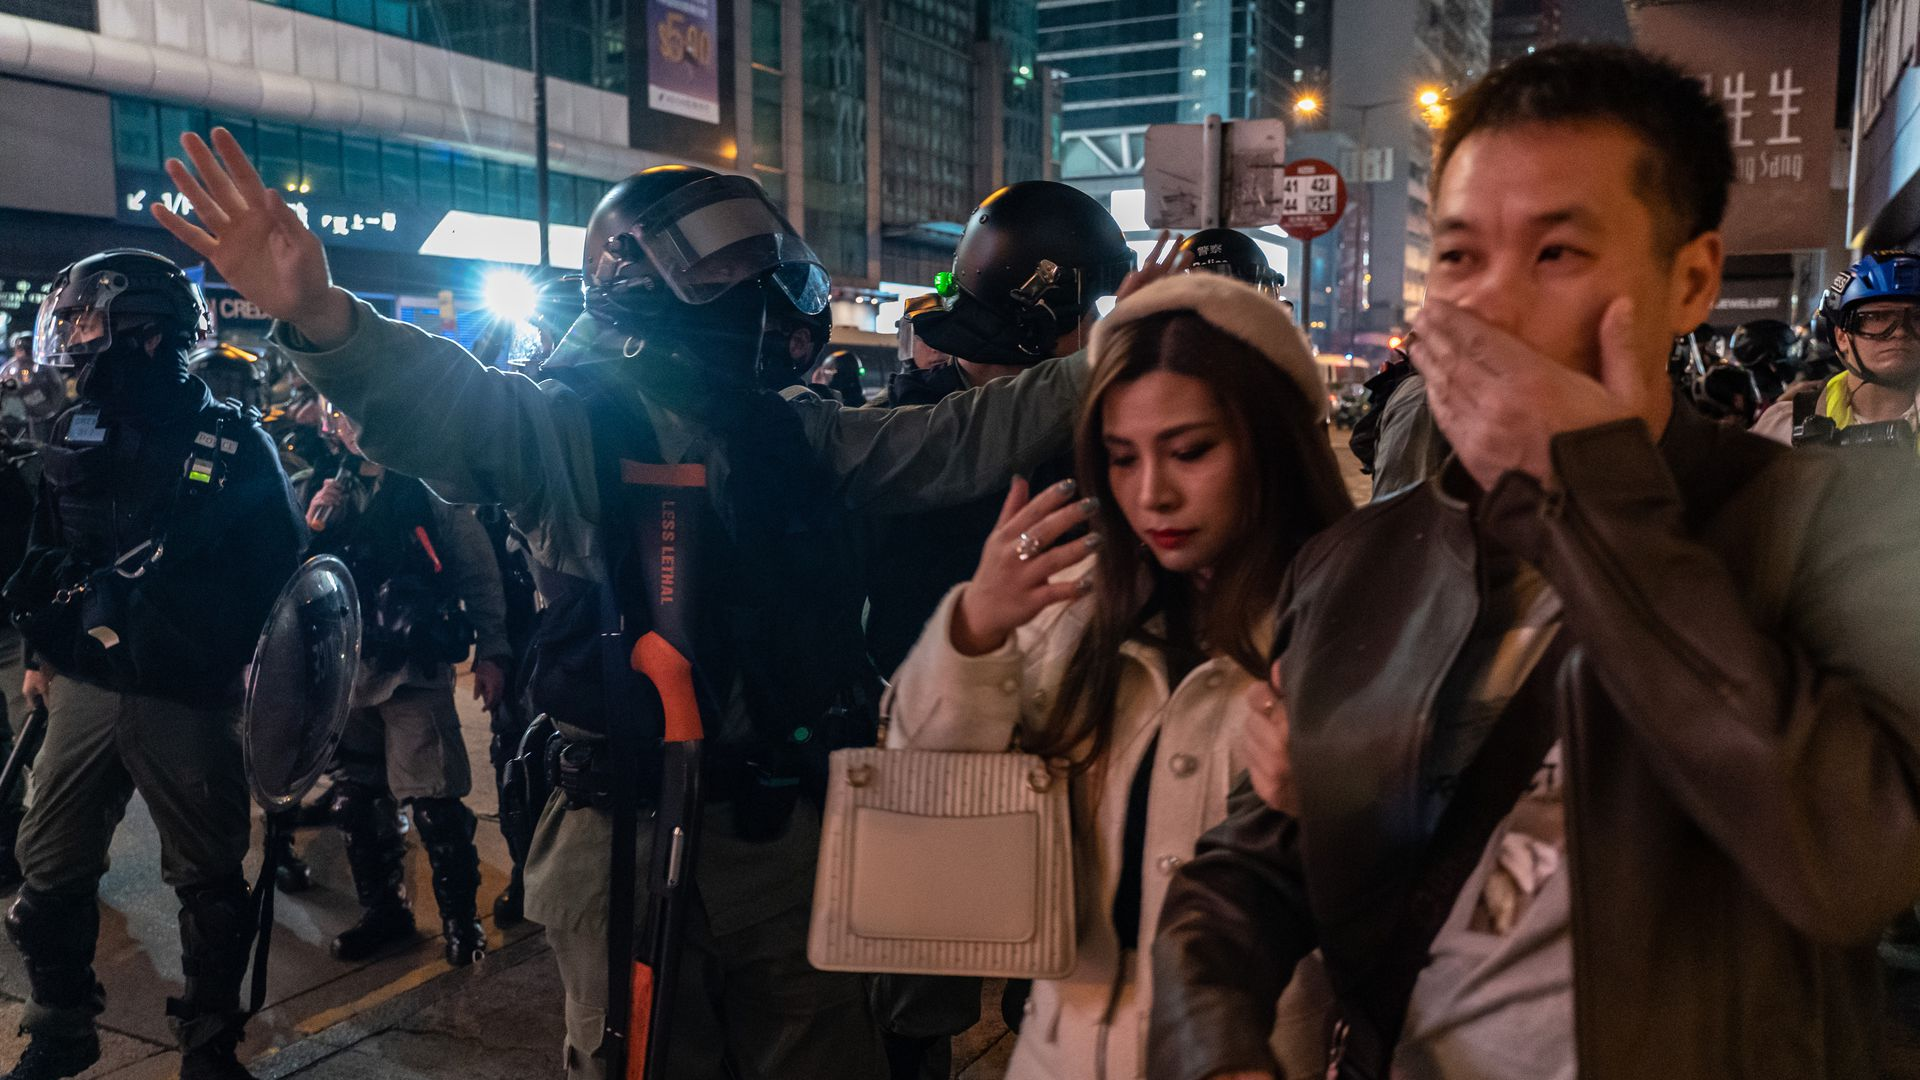 Riot police motion pedestrians away on a street during Christmas night in Mongkok district on December 25, 2019 in Hong Kong, China.